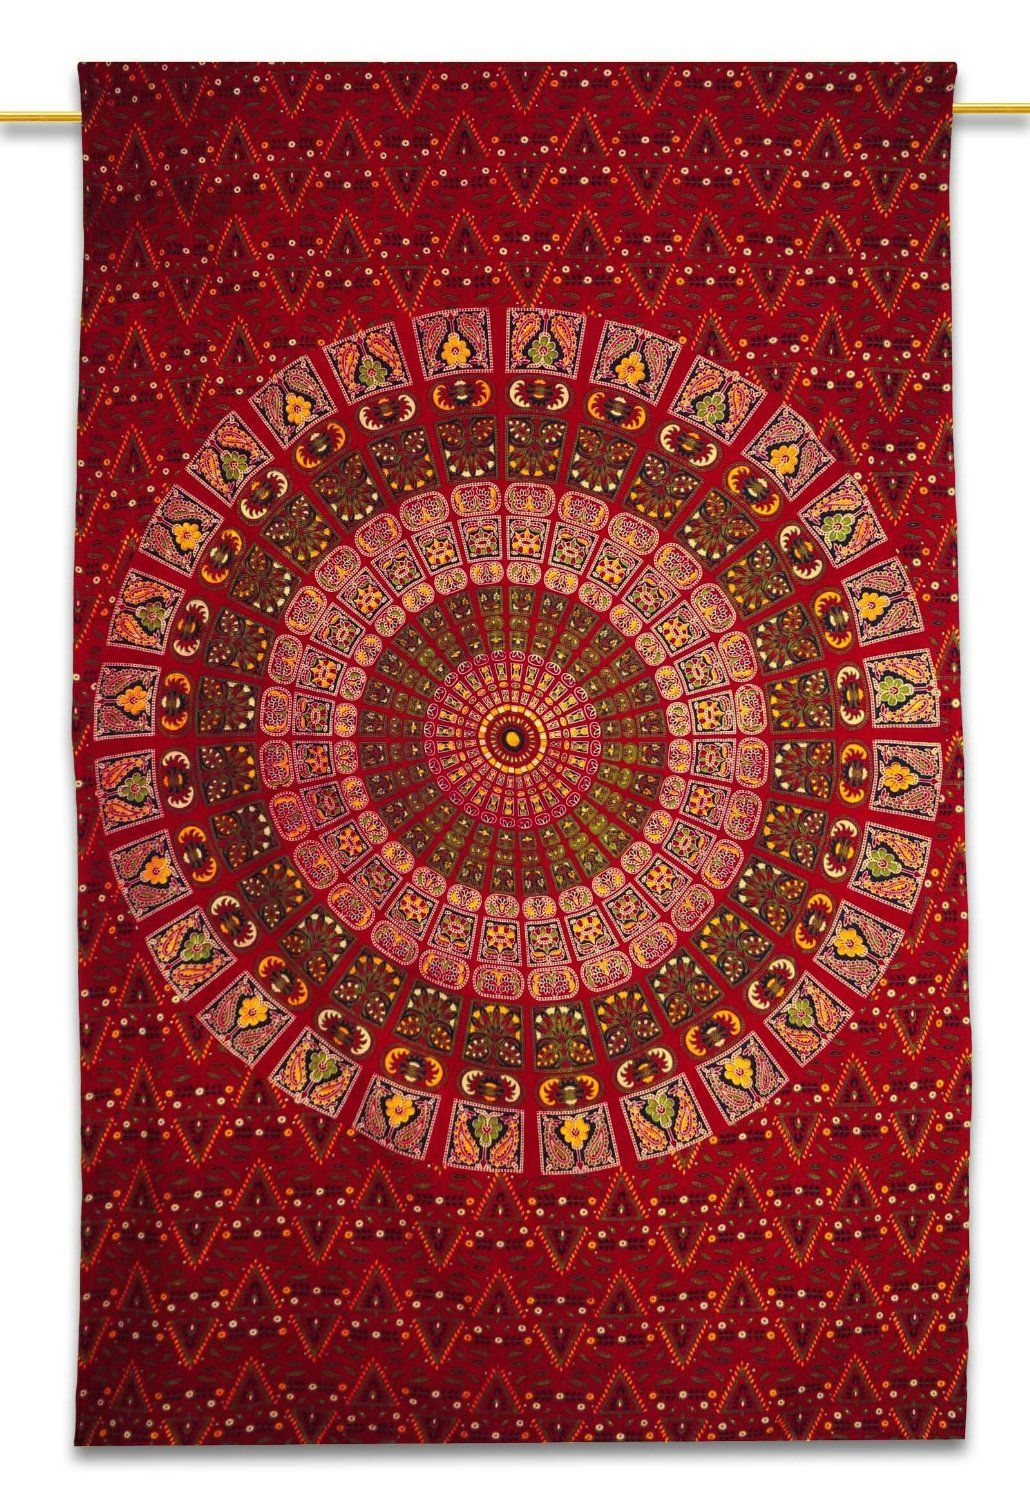 Large Red Mandala Tapestry. click to buy